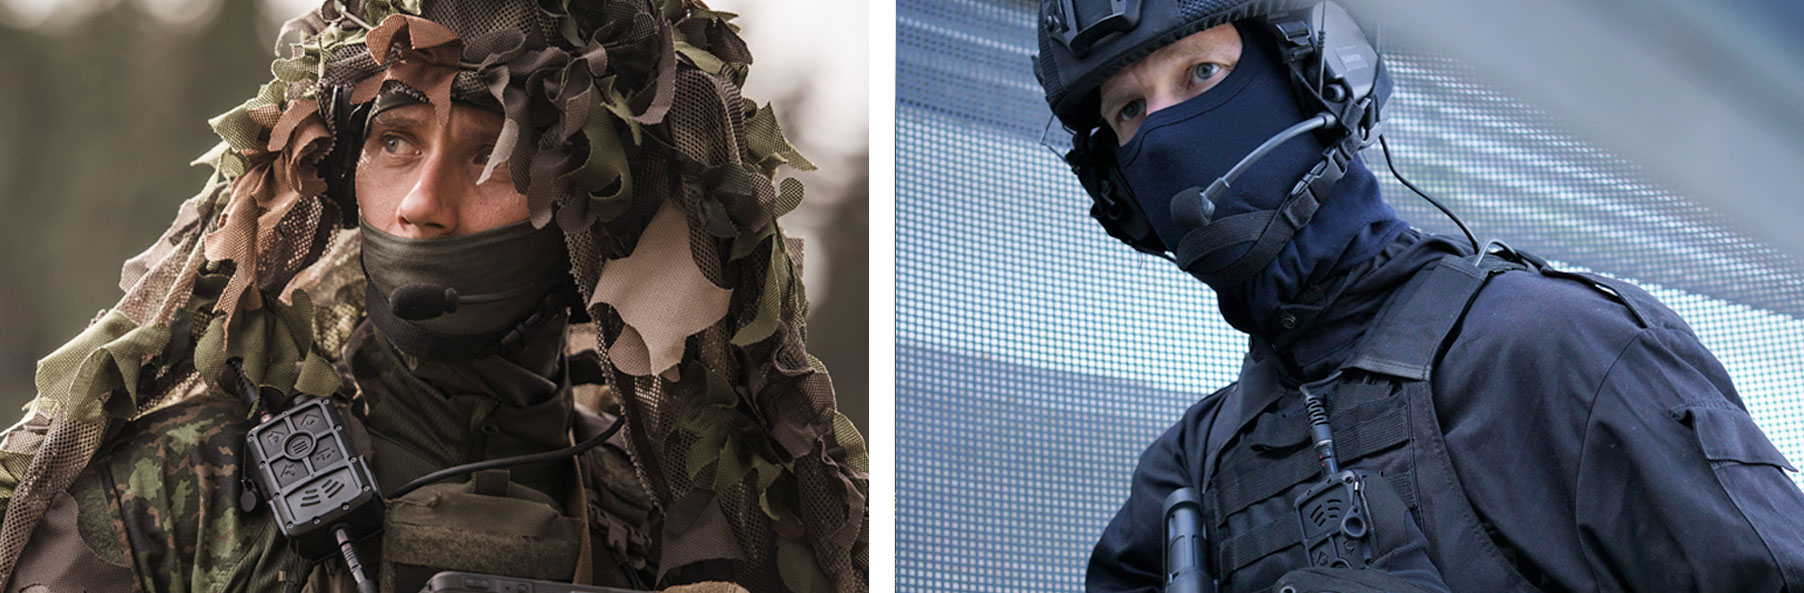 Soldier and police dressed in their gear and utilizing SAVOX TRICS